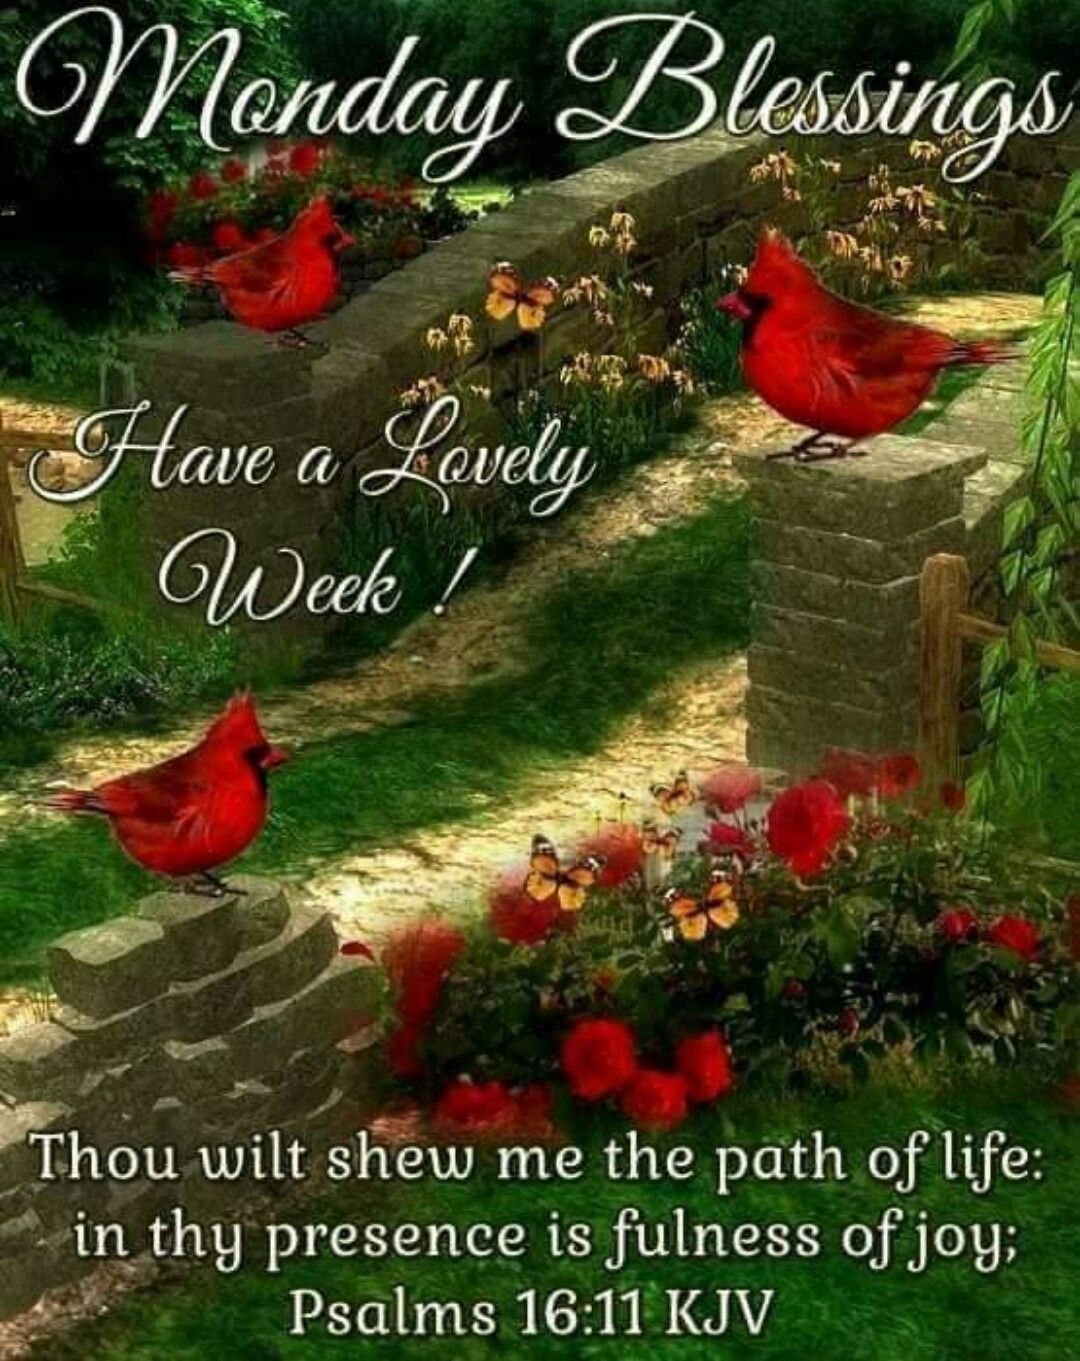 Good Morning Sister And Allhave A Lovely Day And A Great Weekgod